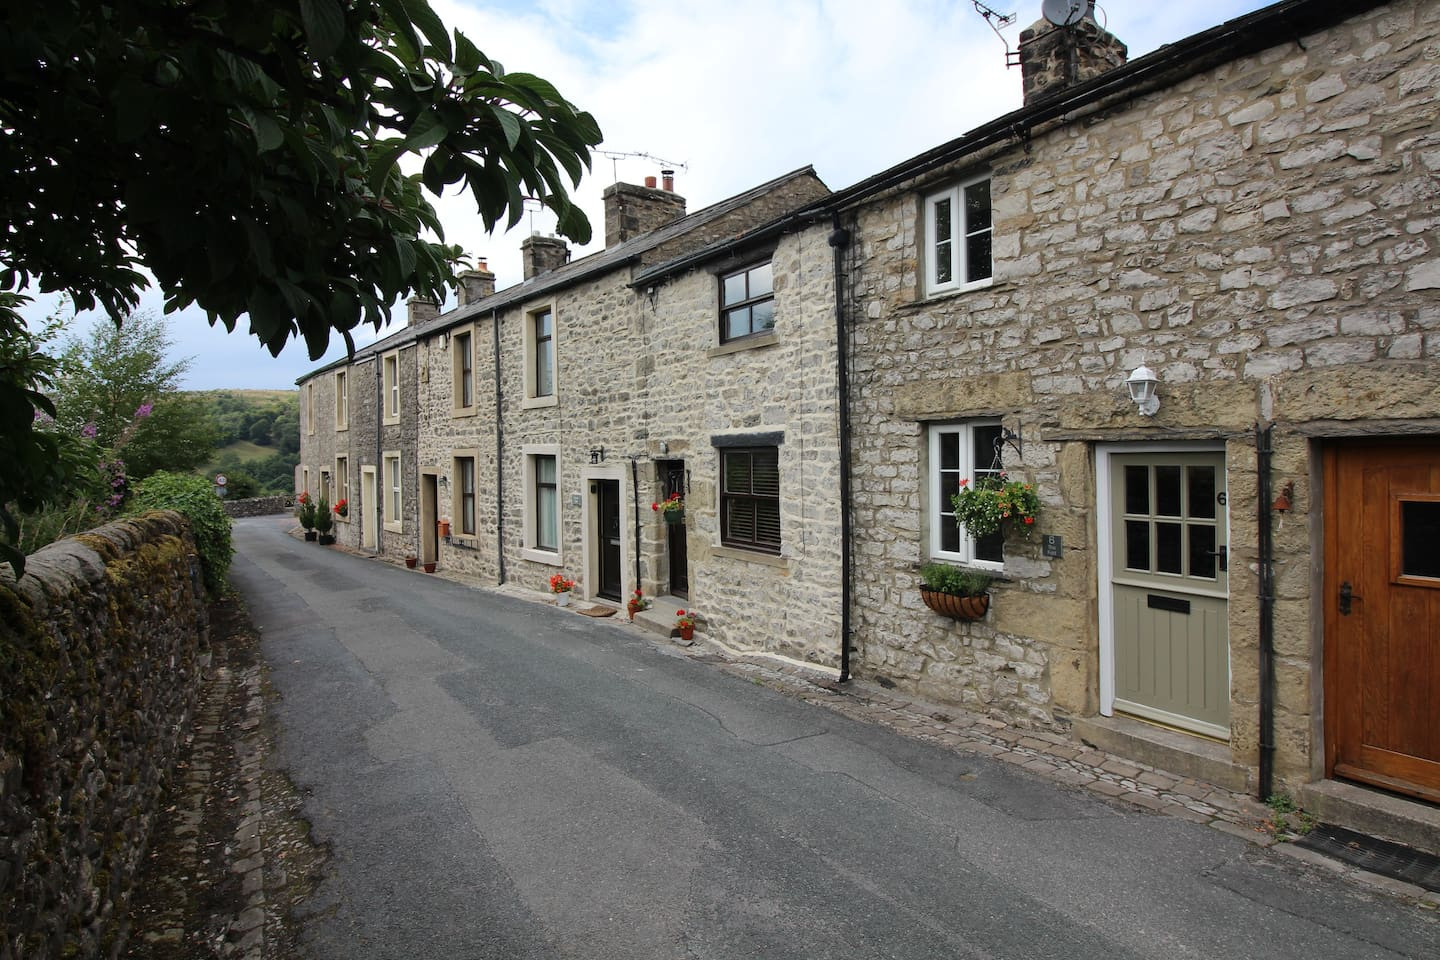 Located in the picturesque and tranquil village of Langcliffe. Just a short distance from the market town of Settle. A perfect place to relax and unwind with great walk and lots to explore straight from the front door.